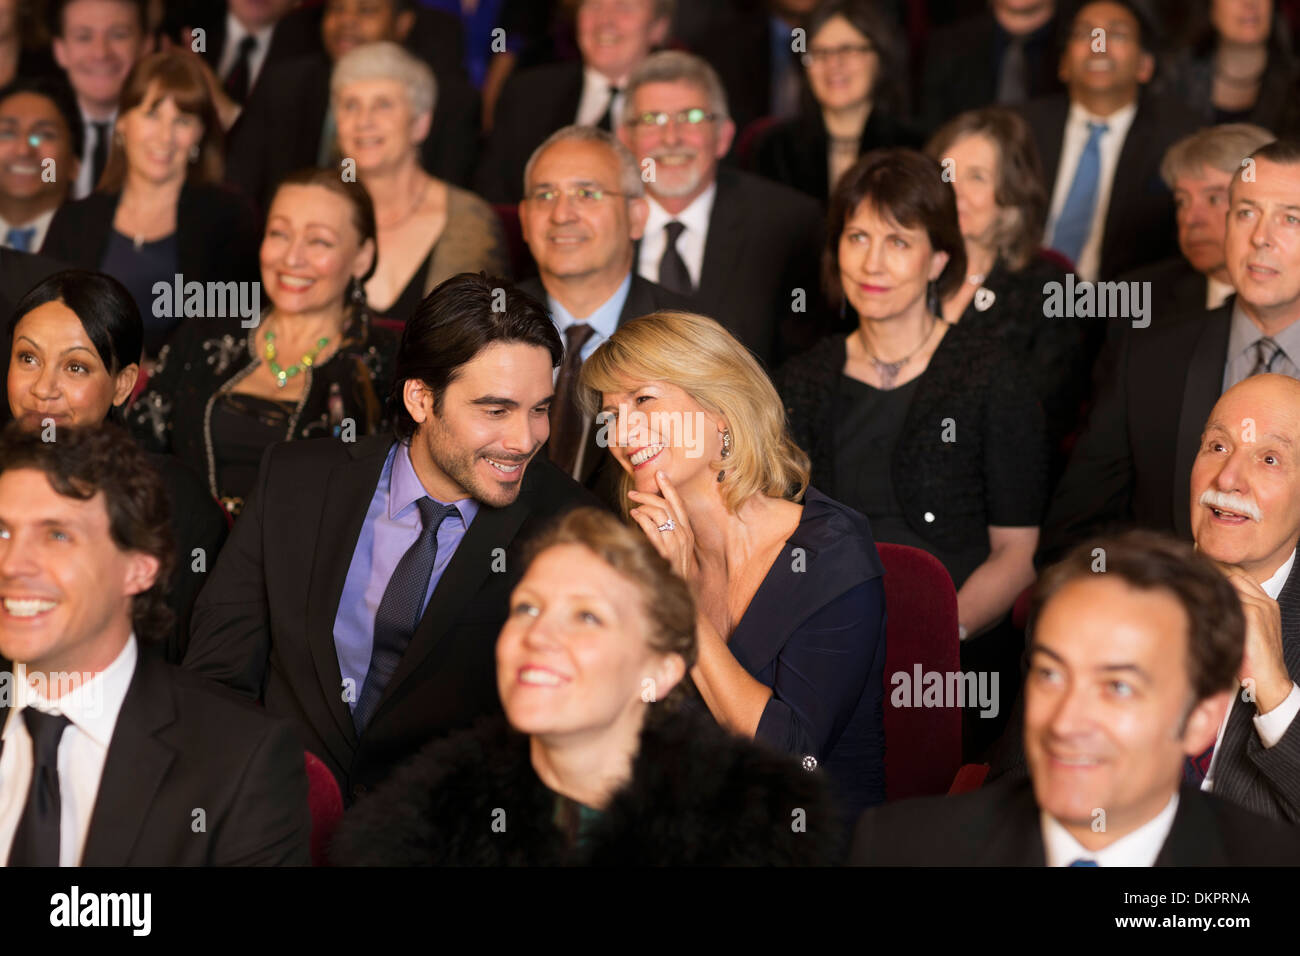 Happy couple clapping in theater audience - Stock Image